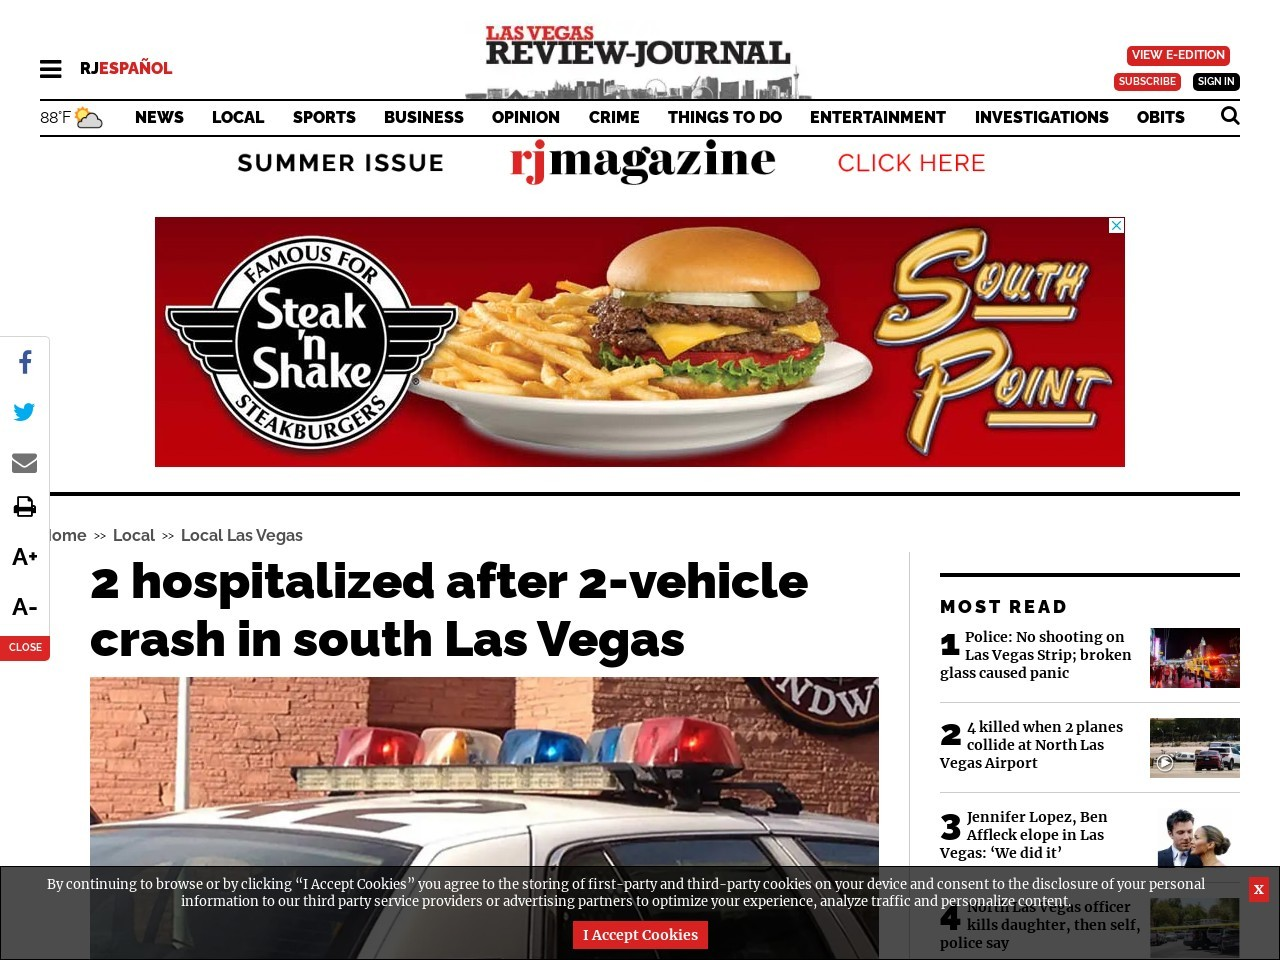 2 hospitalized after 2-vehicle crash in south Las Vegas